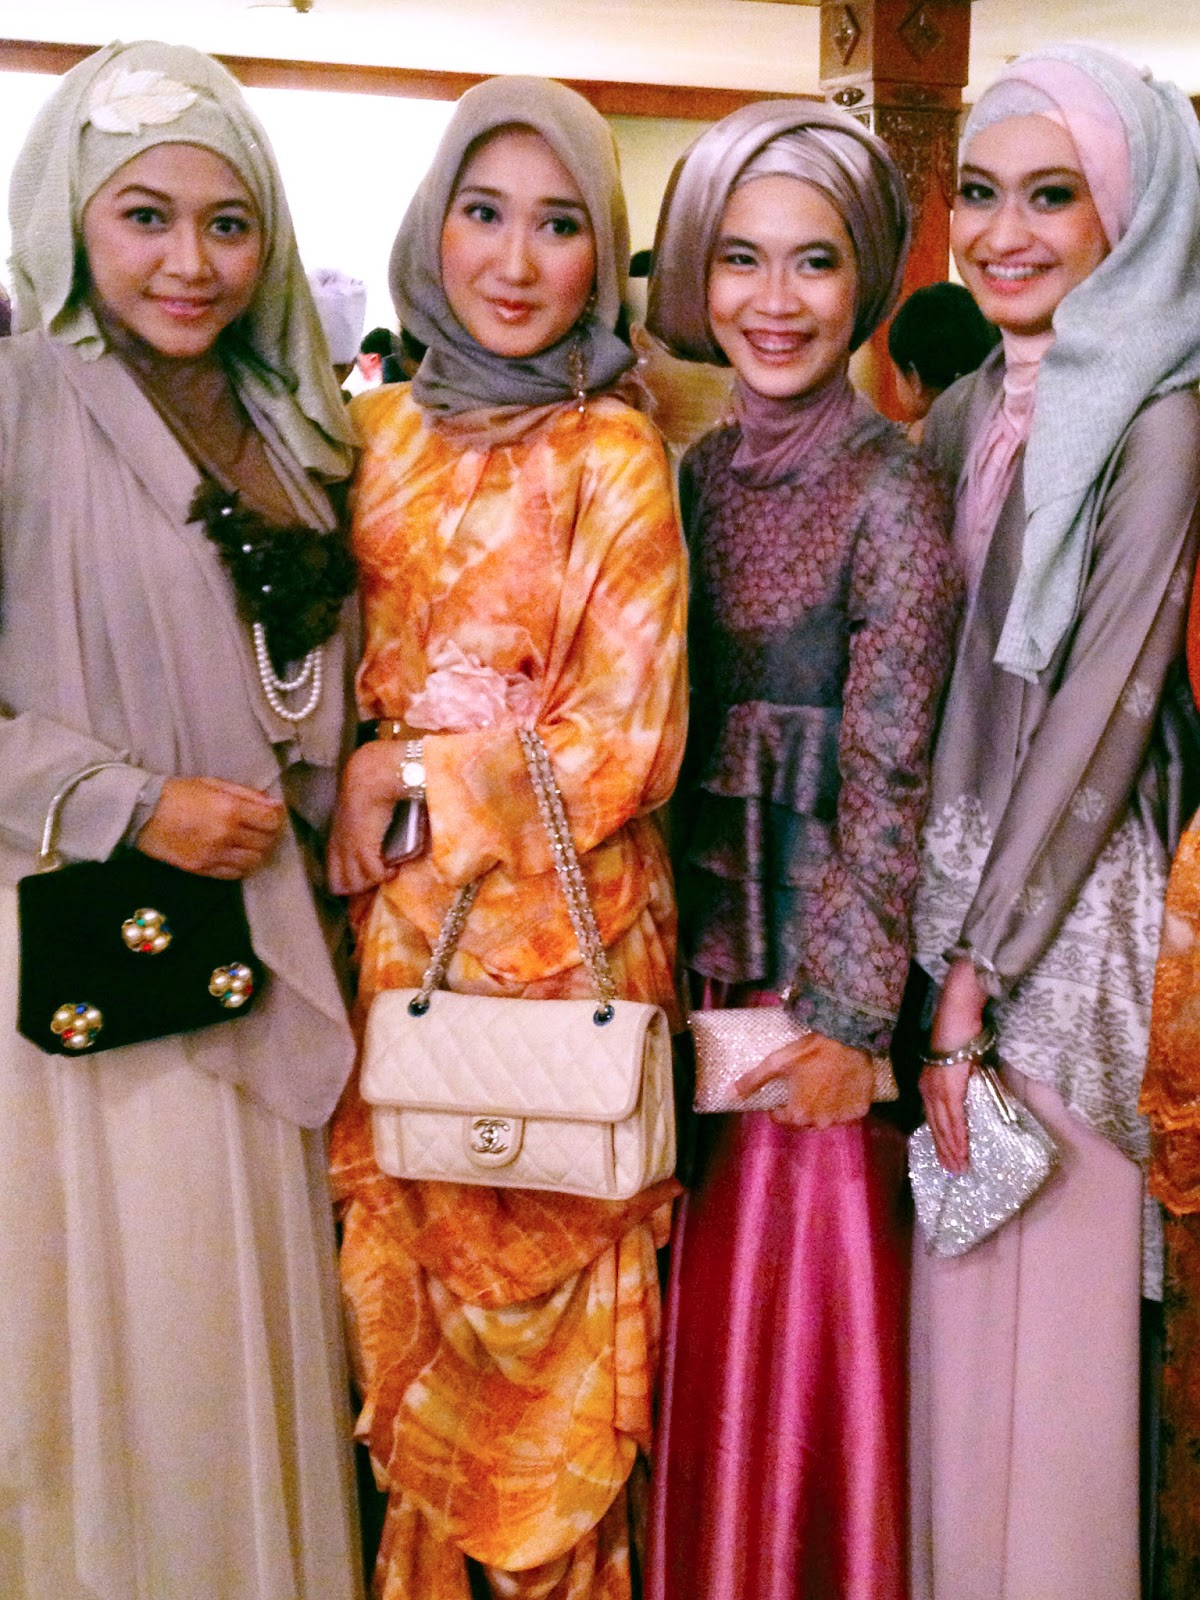 port of tasya: meet friends at ina's rofi wedding